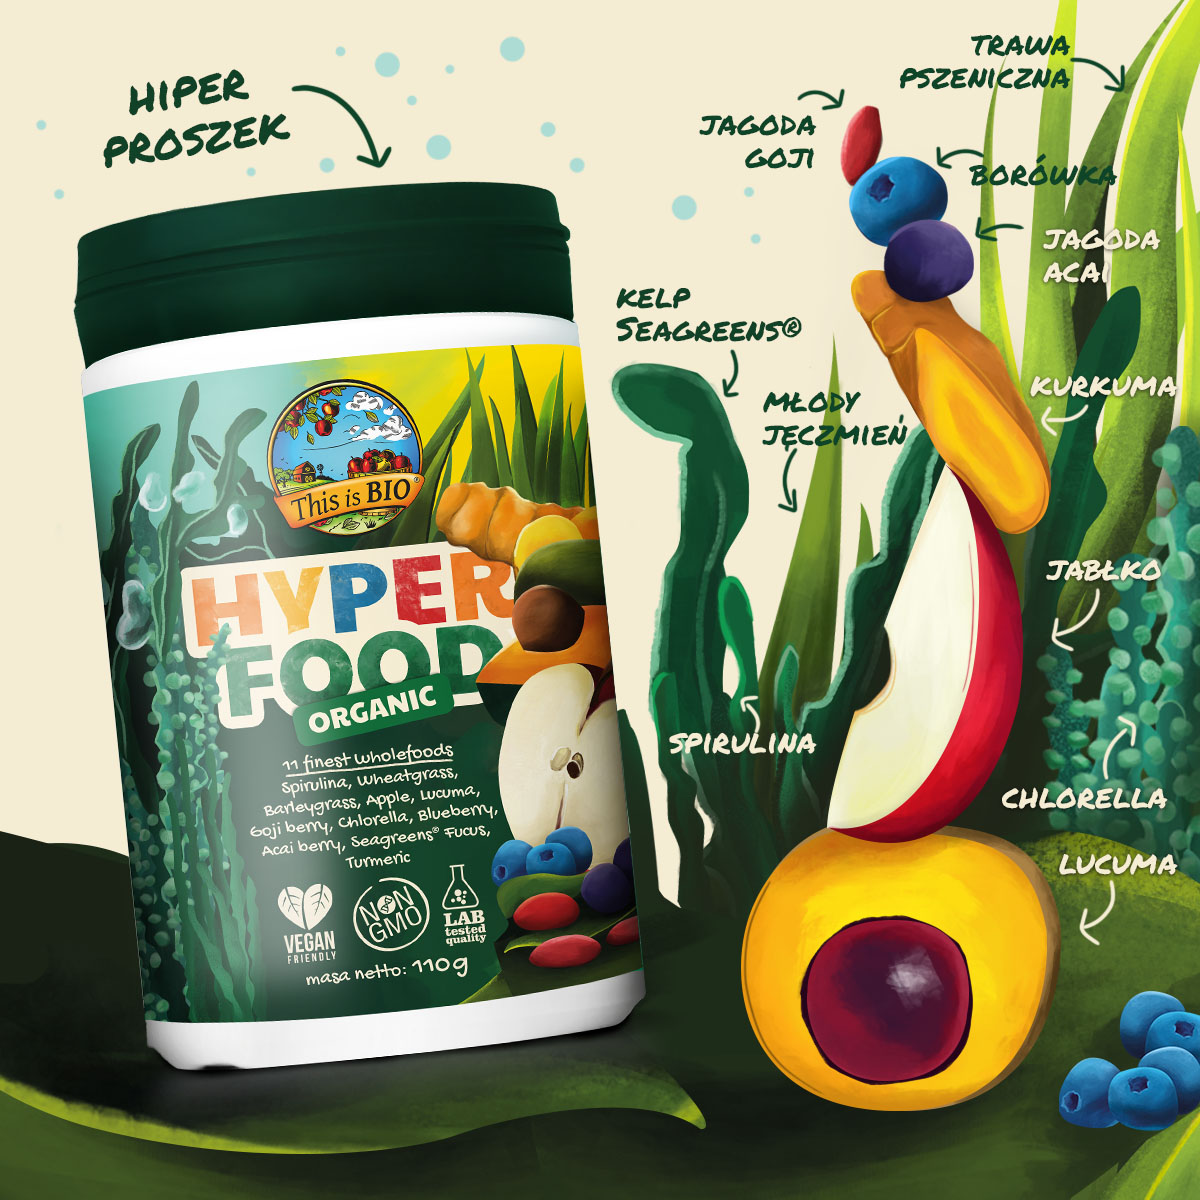 HYPERFOOD This is BIO